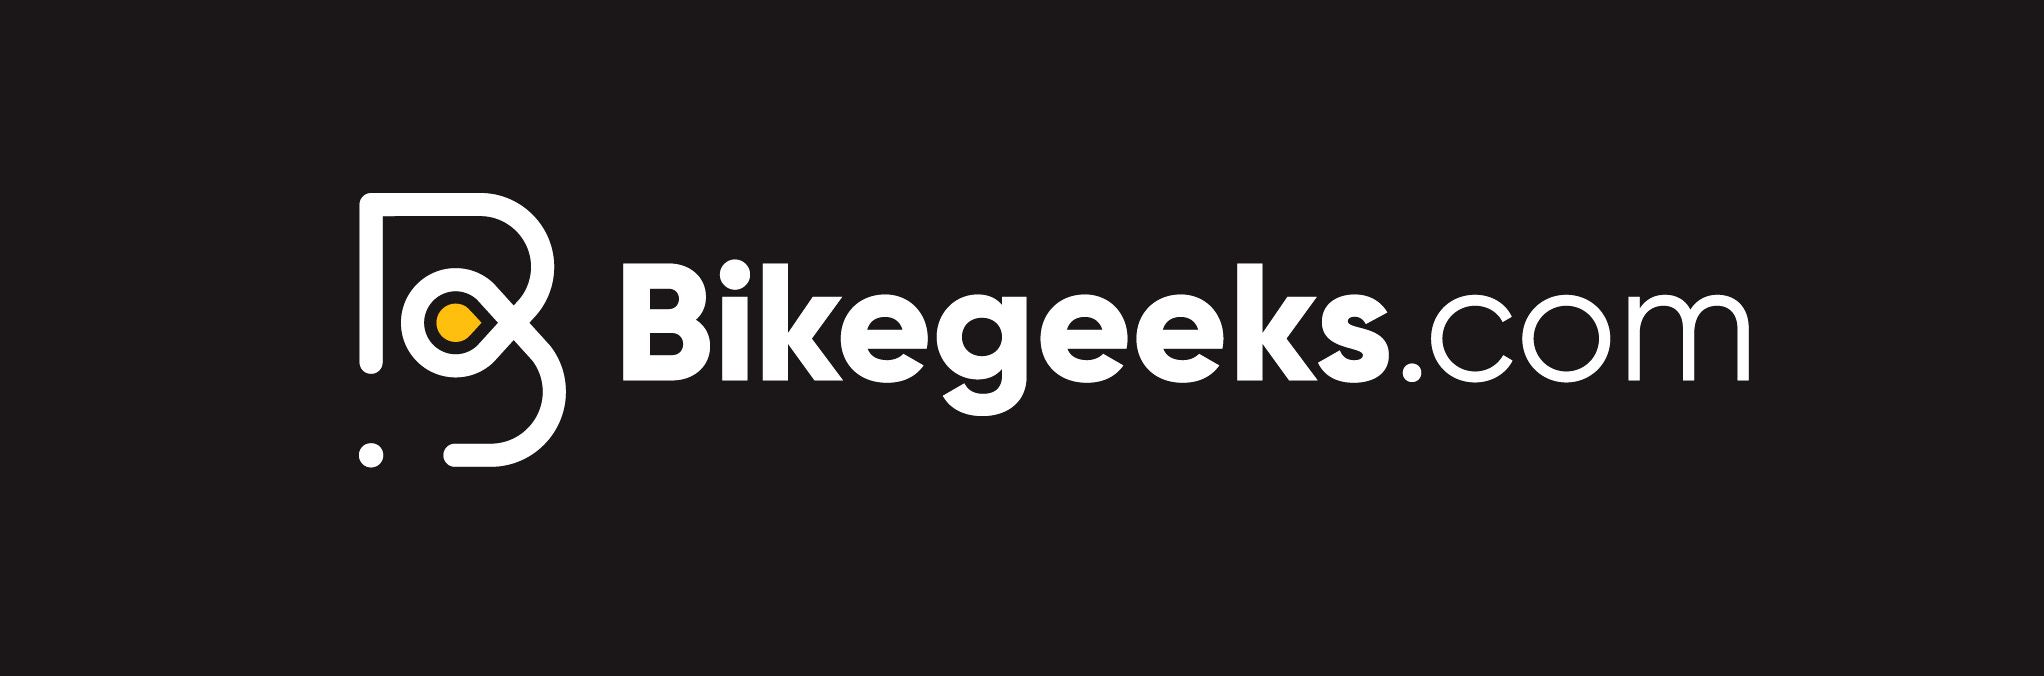 bike_geeks_logo_white_guide.jpg